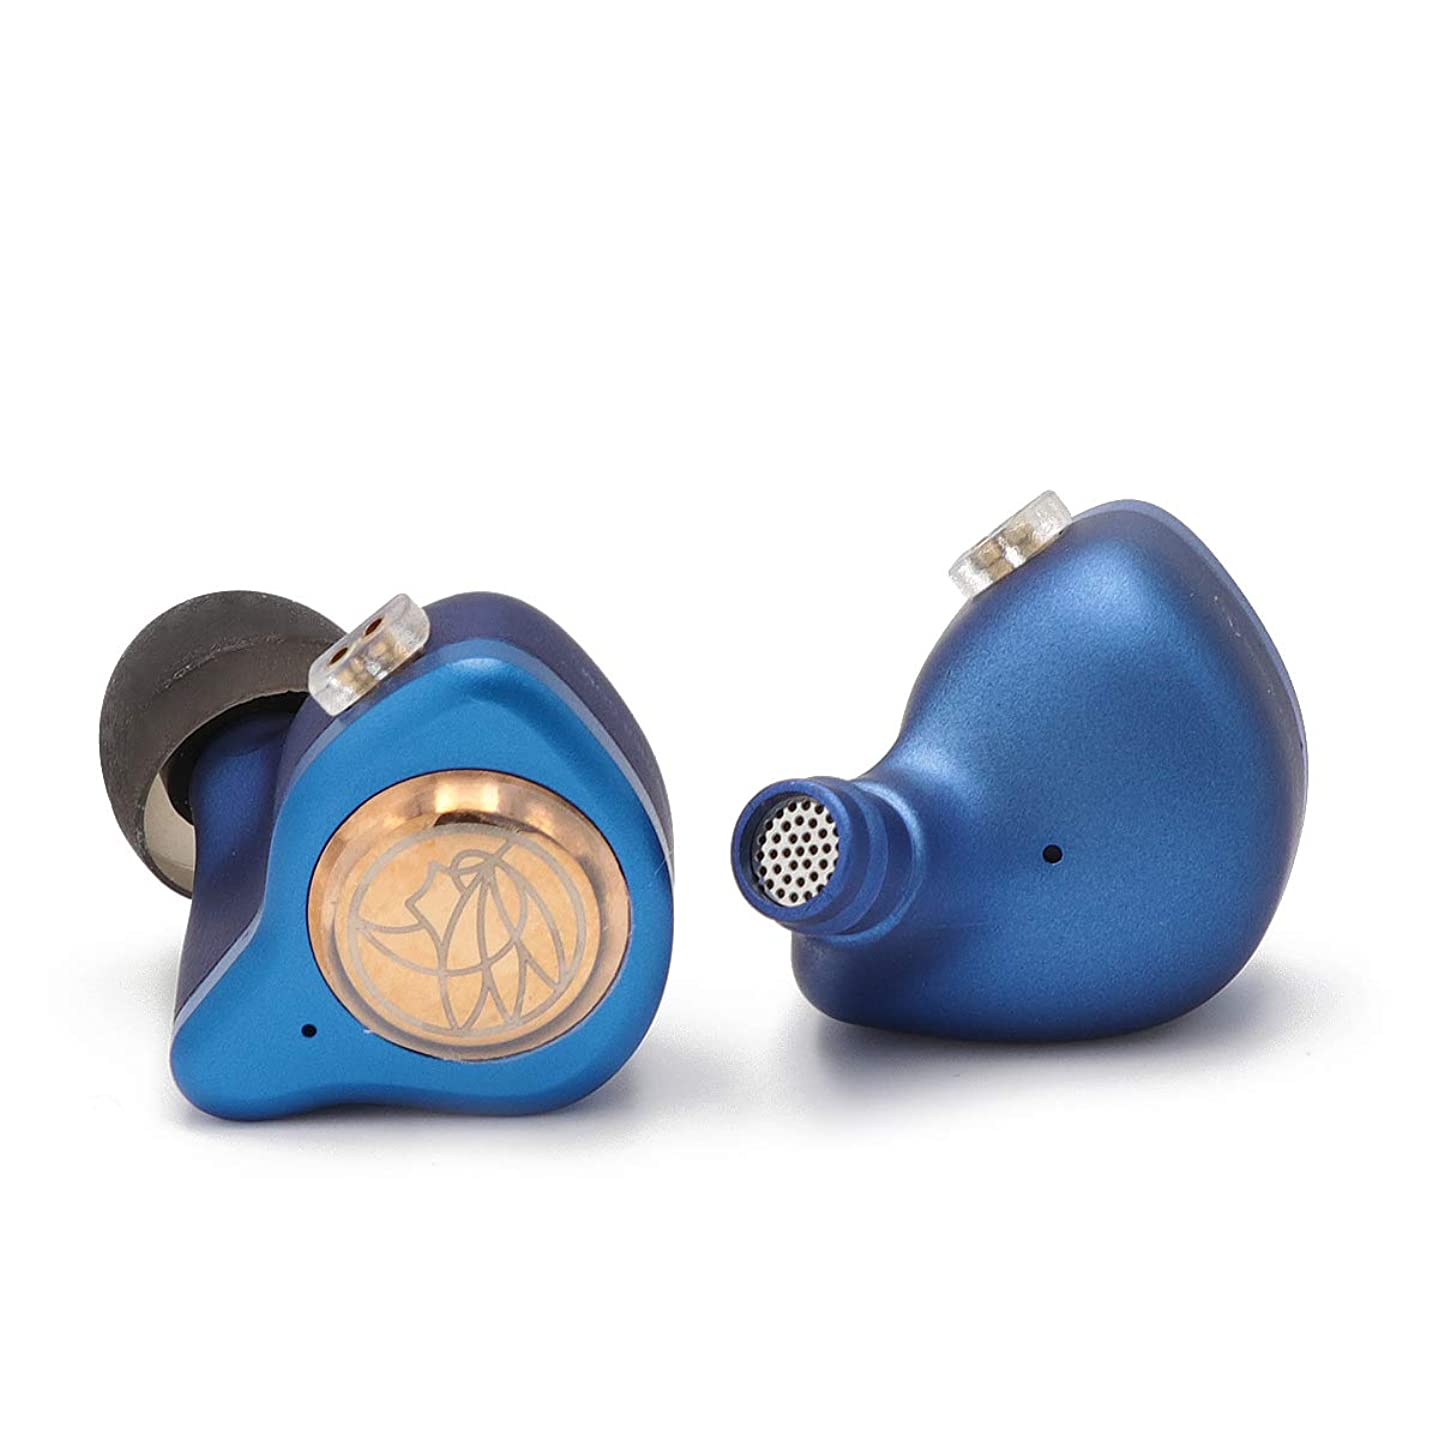 Linsoul TFZ King II Dynamic Driver HiFi Monitor in-Ear Earphone Audiophile IEMs with 2Pin 0.78mm Detachable Cable (Blue)